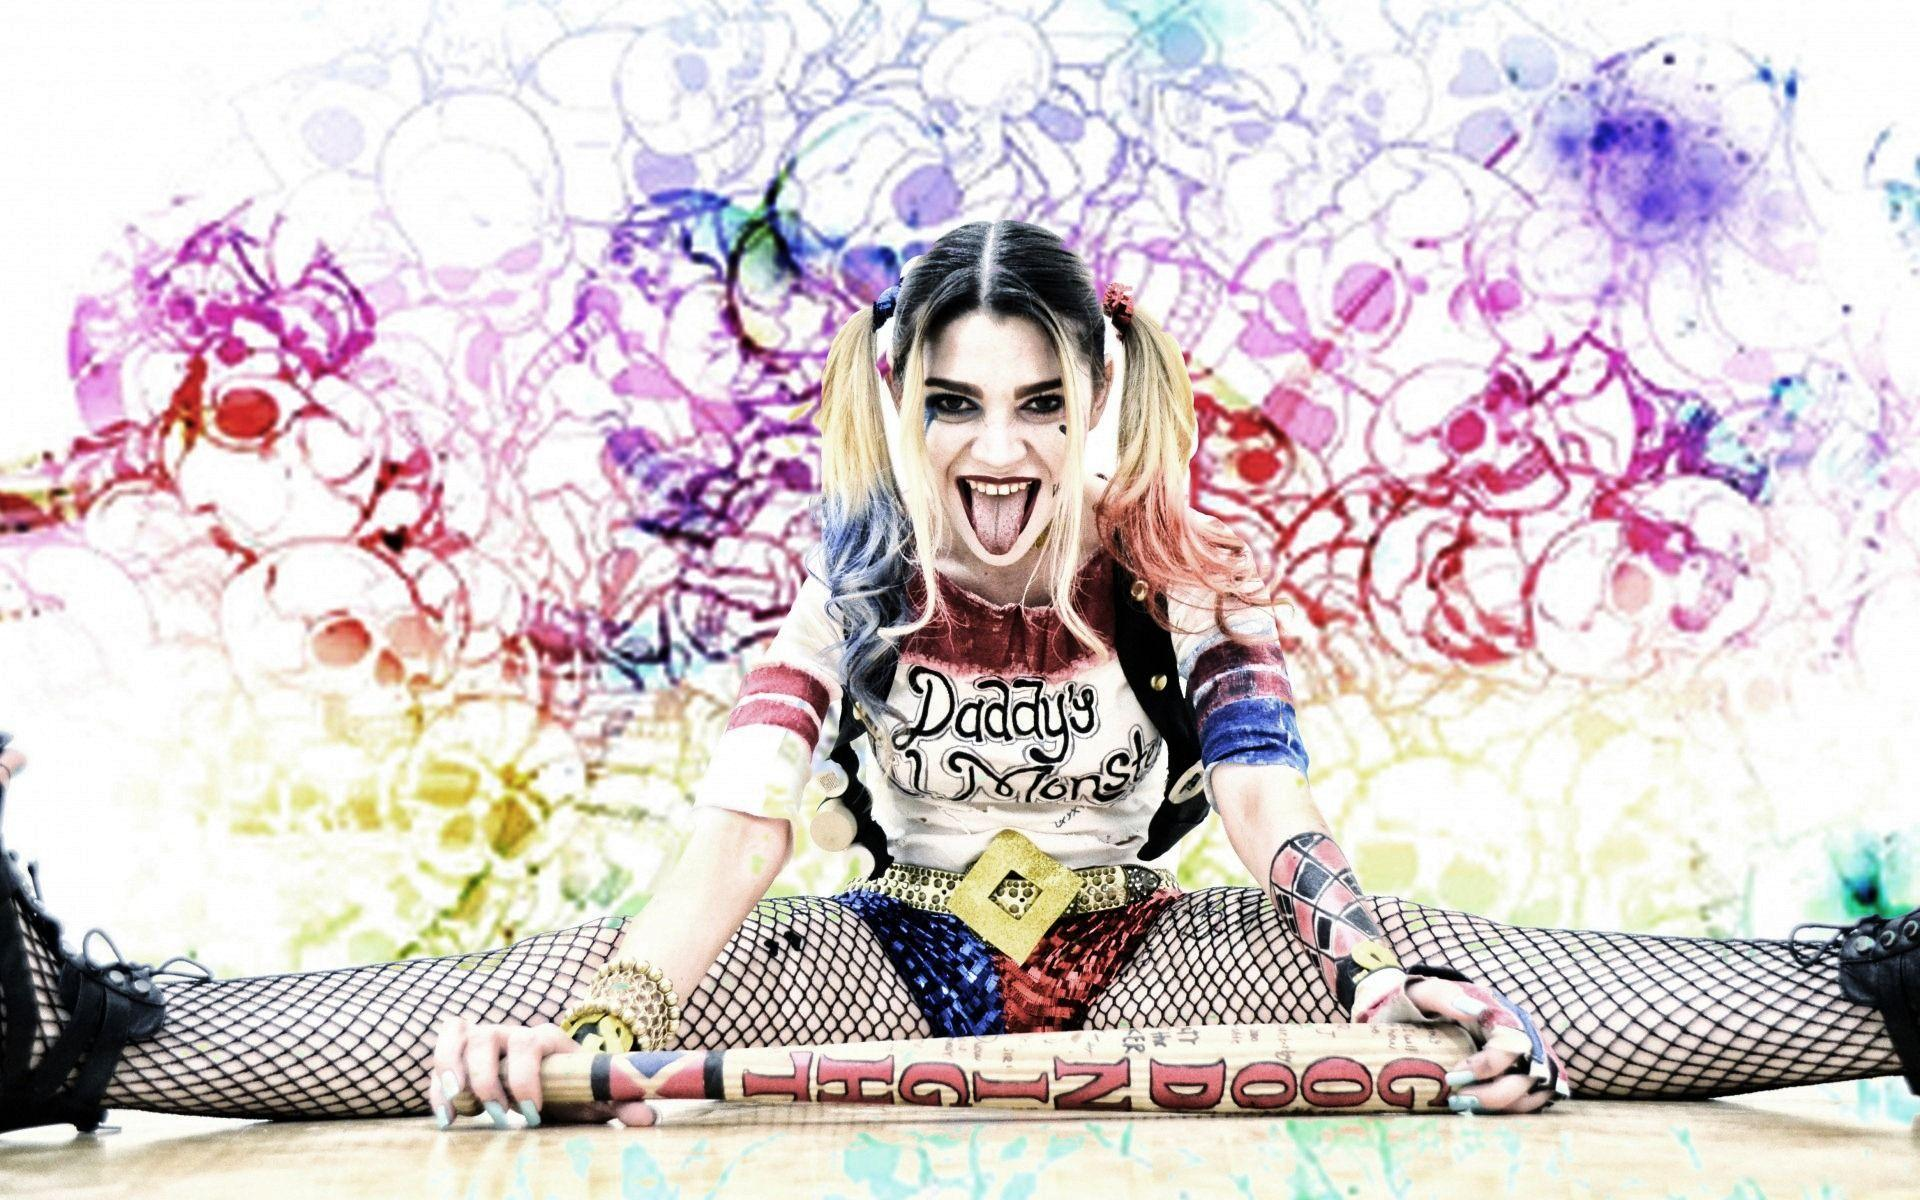 Harley quinn suicide squad wallpapers wallpaper cave for Harley quinn wallpaper